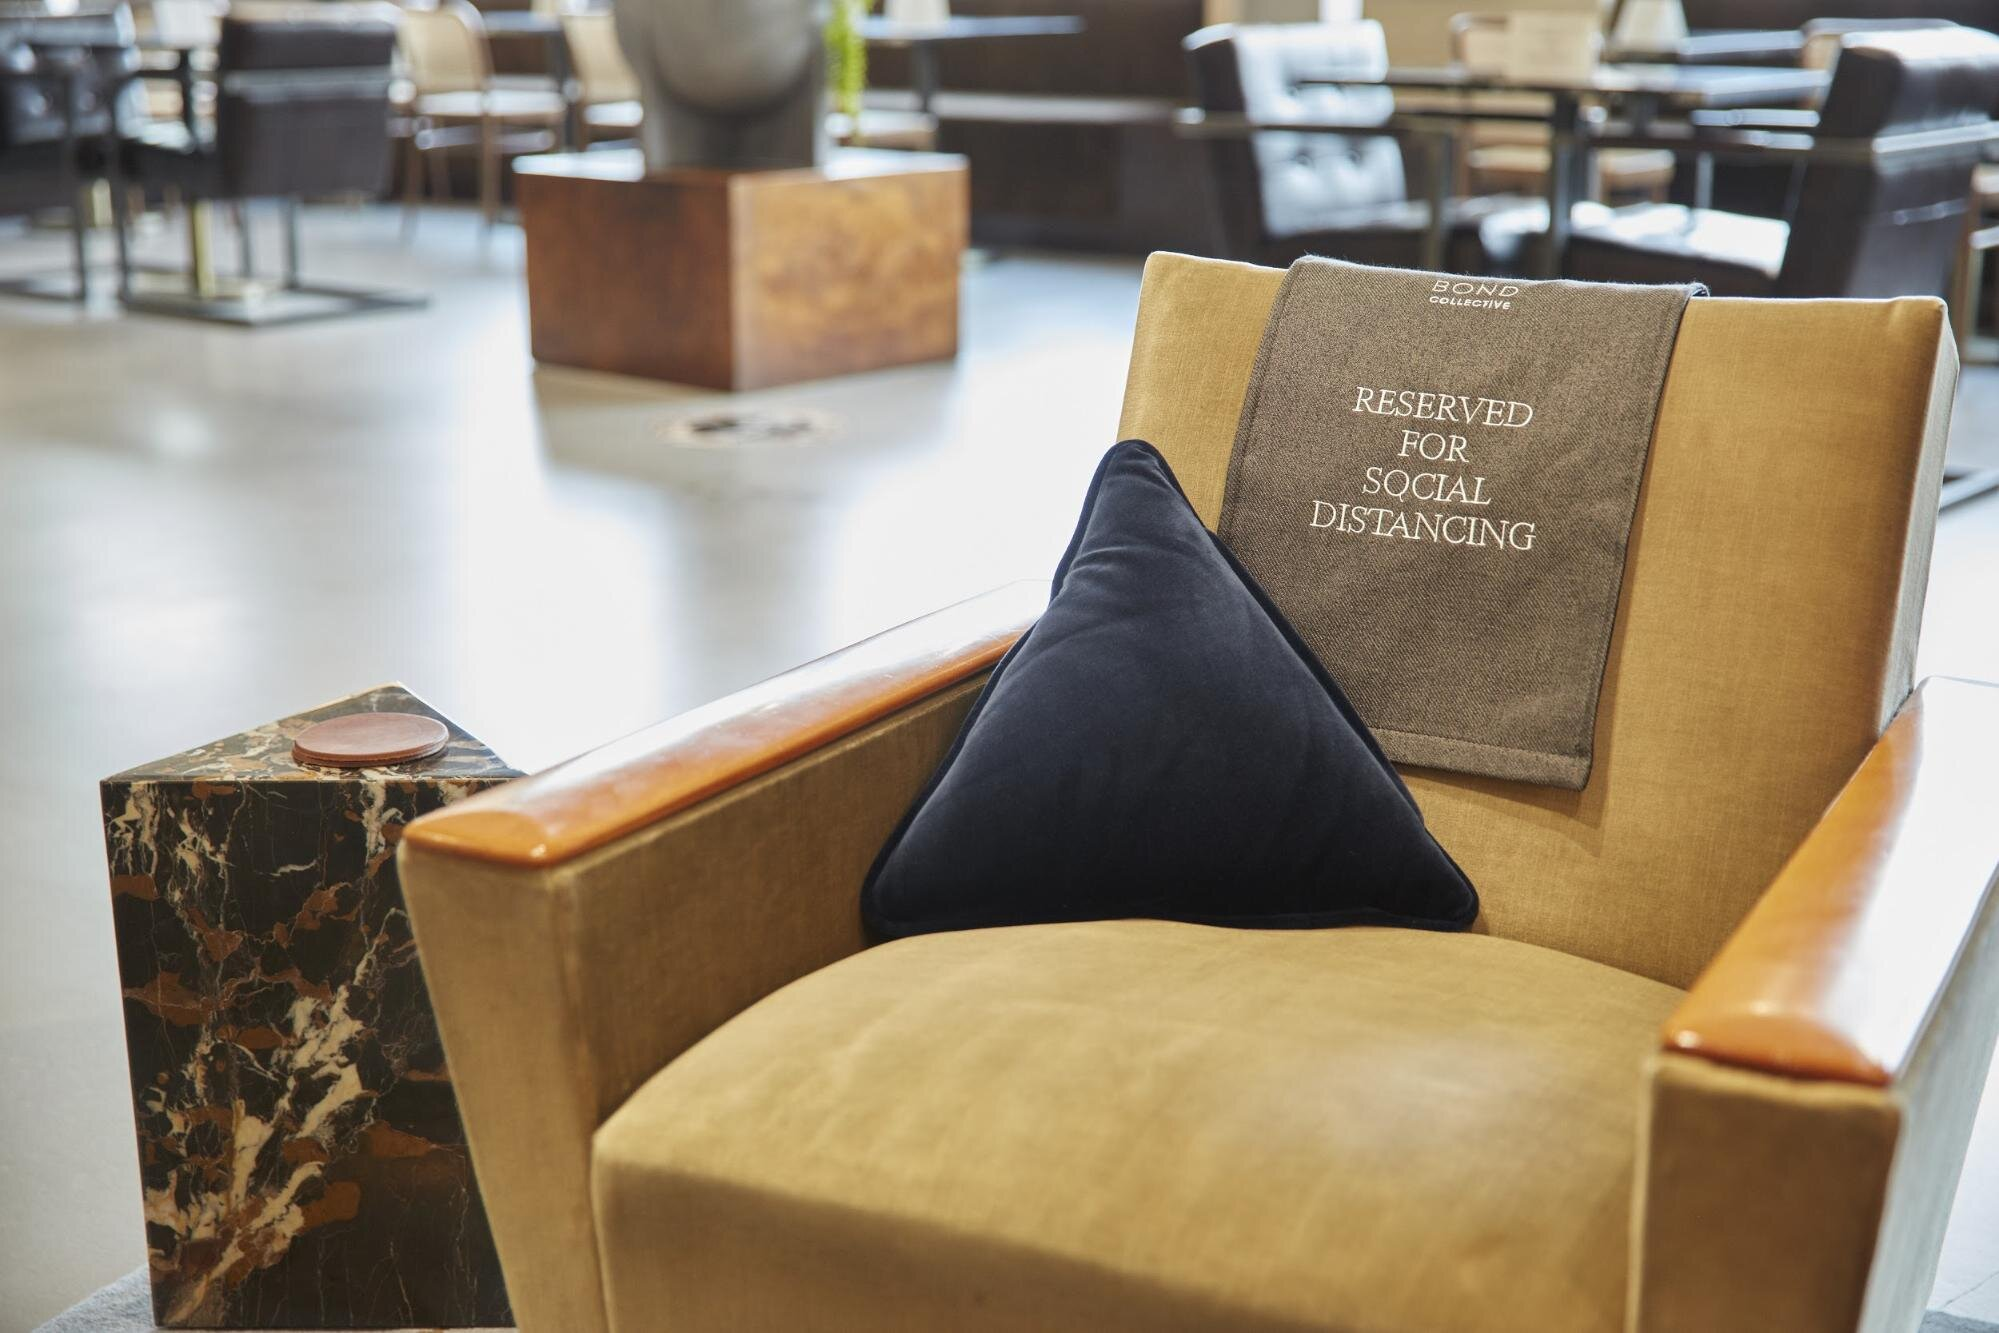 decorative couch signs  social distancing in the workplace